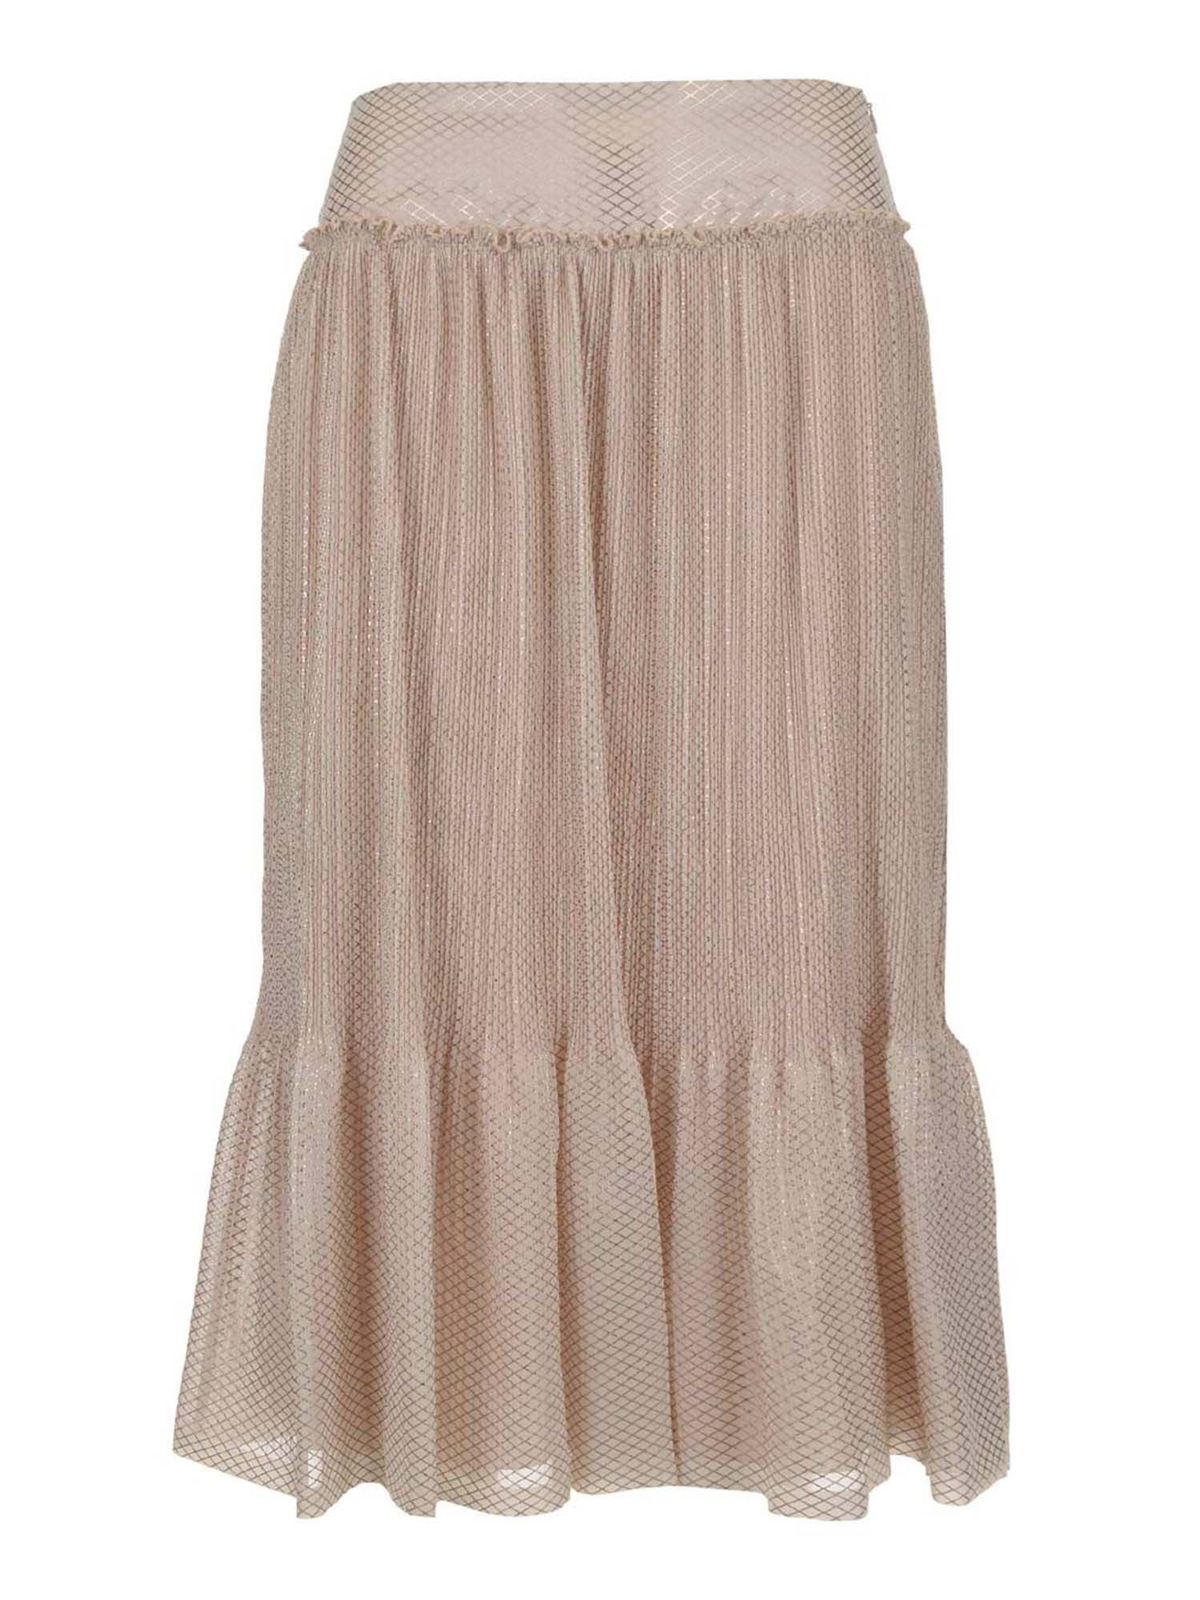 See By Chloé Pleated Midi Skirt In Beige